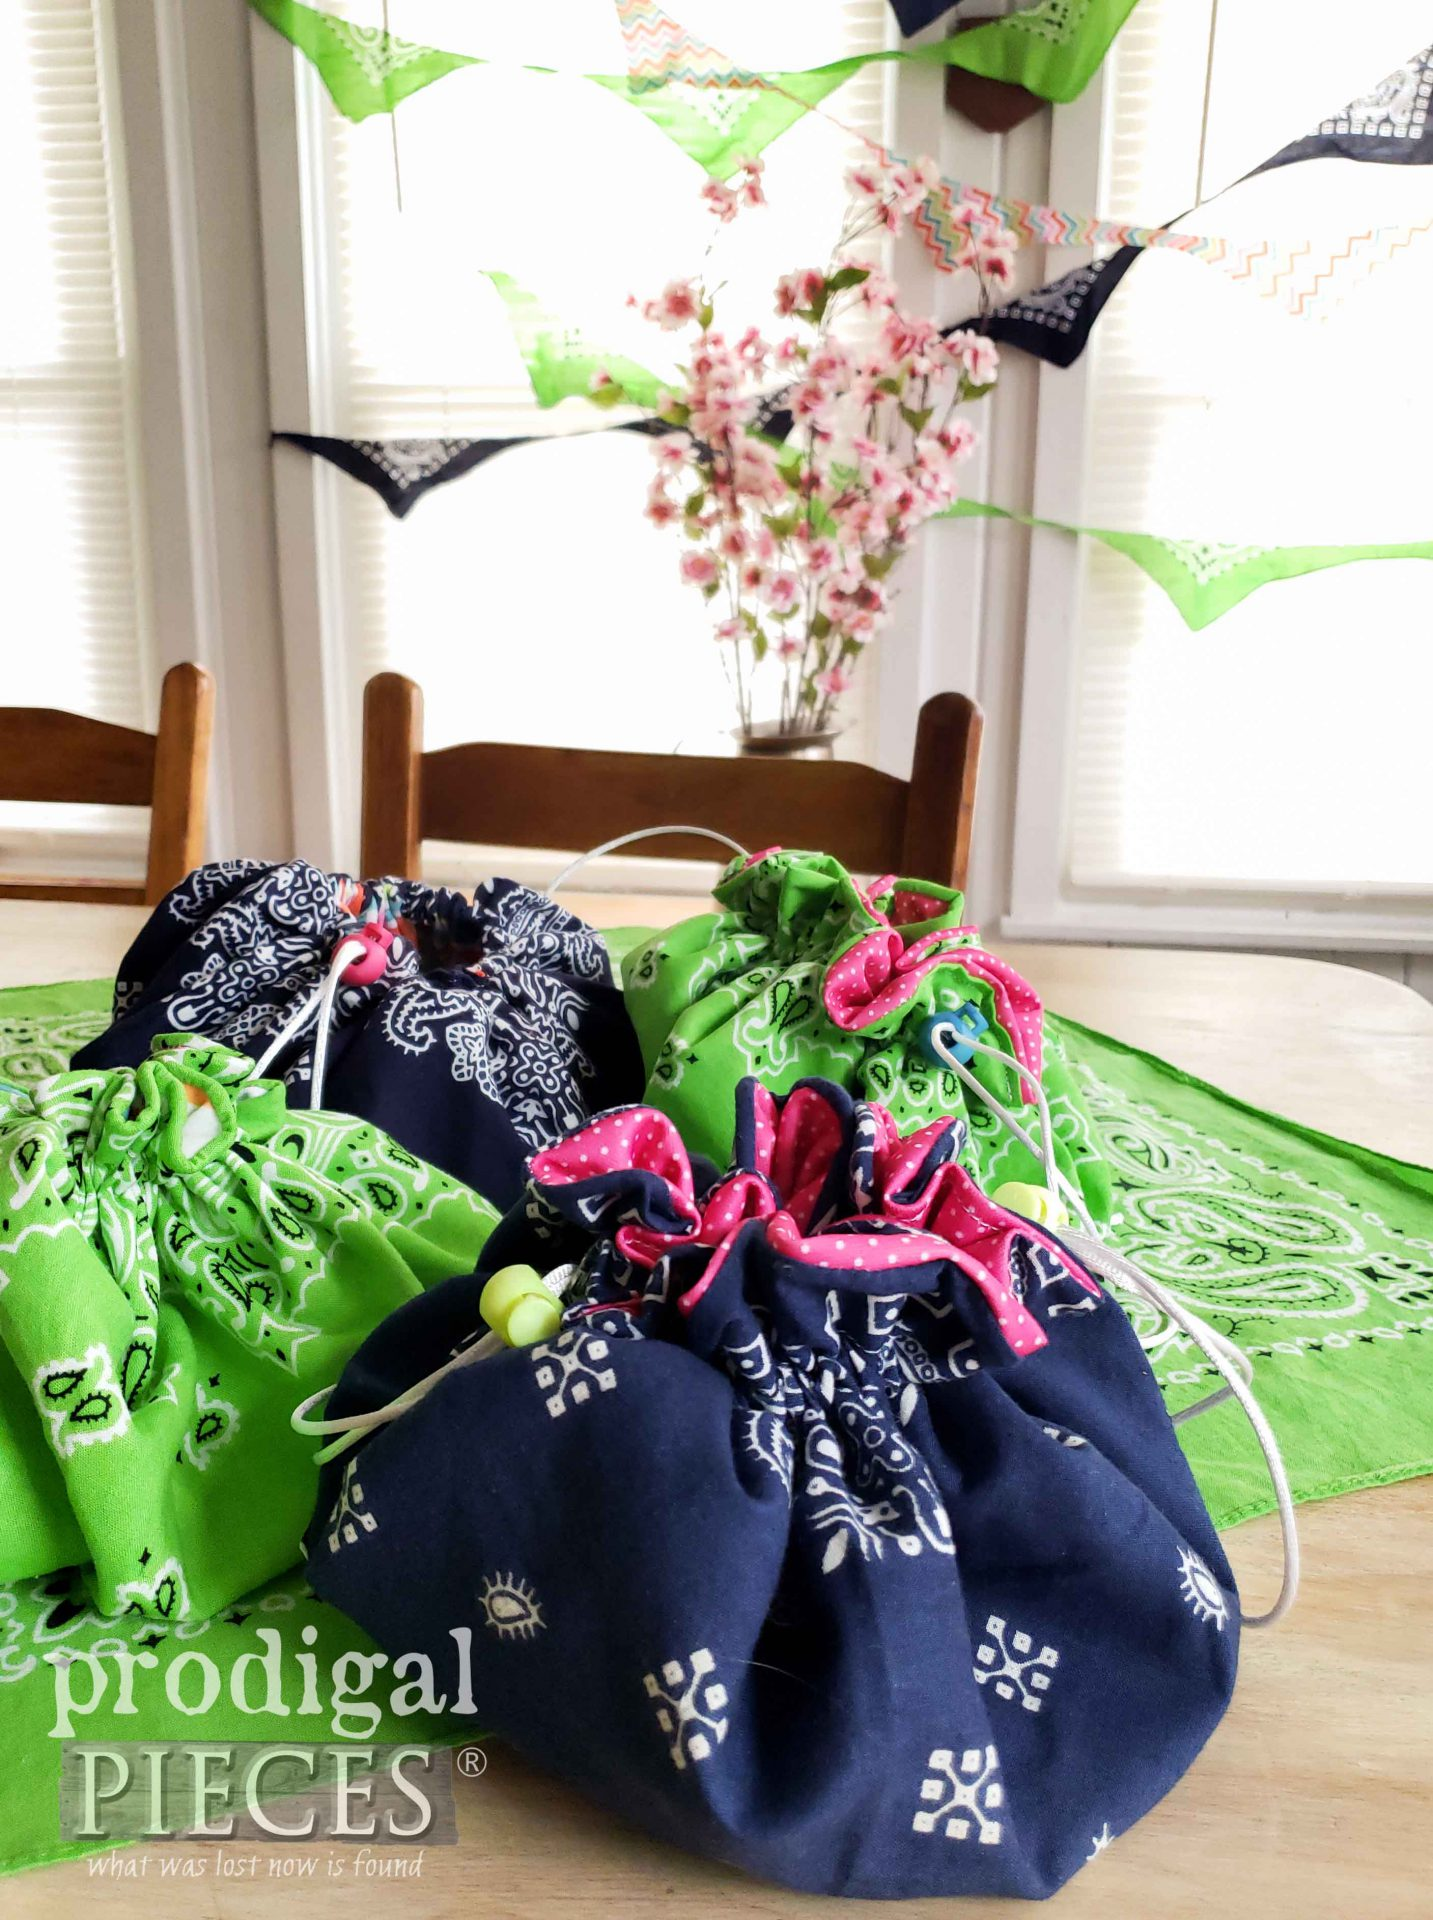 Handmade Bandana Drawstring Bag by Larissa of Prodigal Pieces with video tutorial | prodigalpieces.com #prodigalpieces #diy #fashion #upcycle #farmhouse #sewing